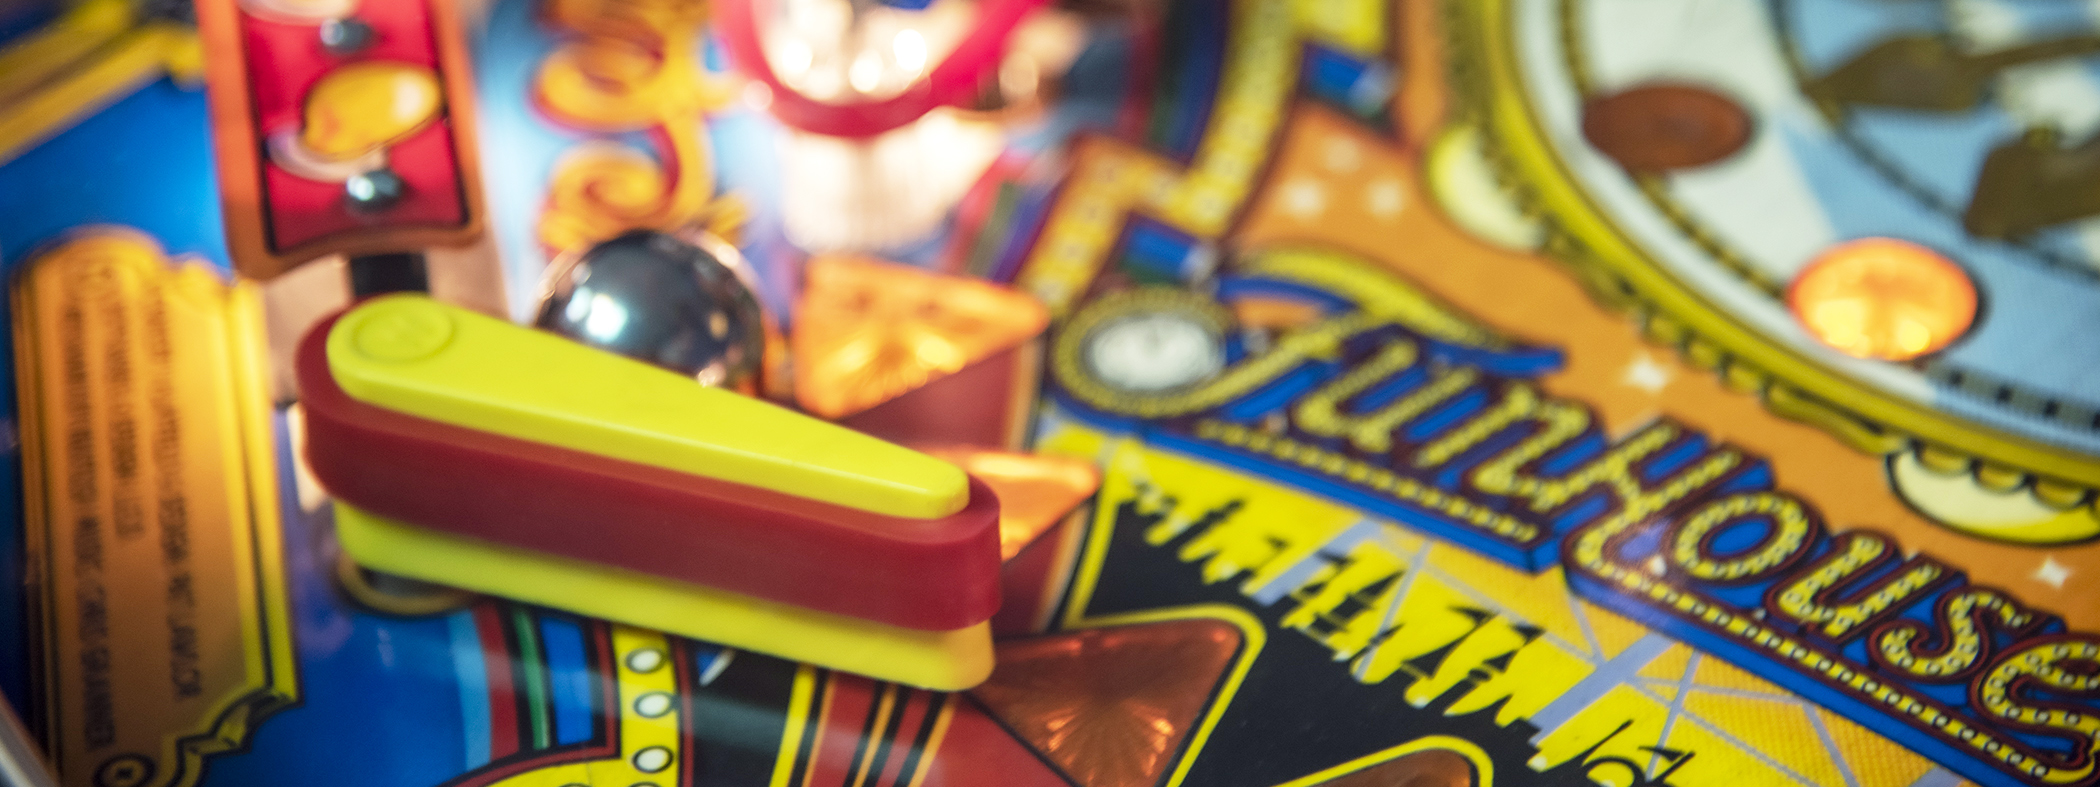 Header Image: Our Games & Pricing. Blizzard Mountain Pinball, Conifer, Colorado